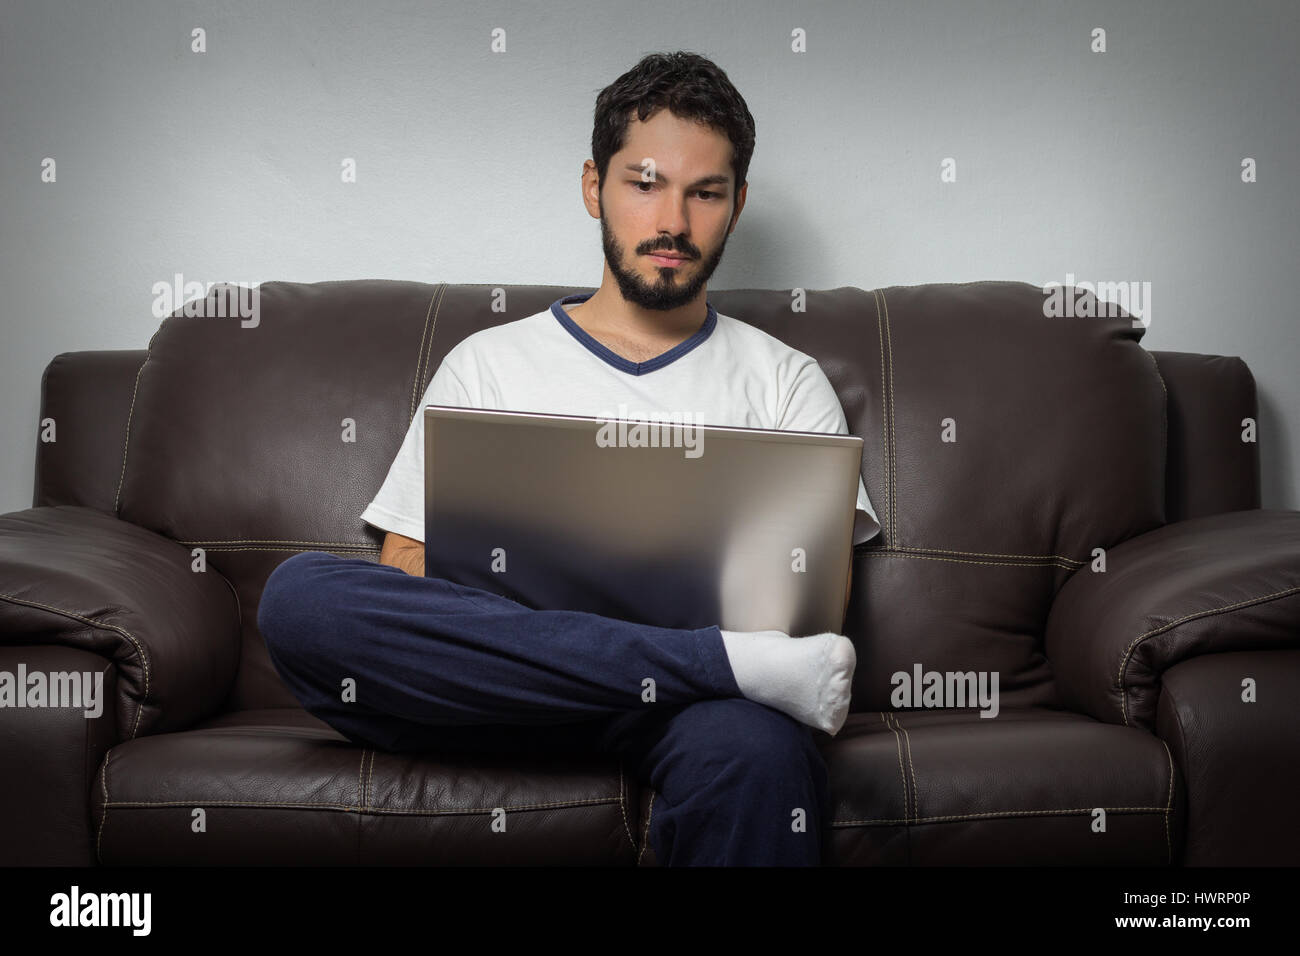 Serious worker at his home office working working with a laptop in the lap. - Stock Image